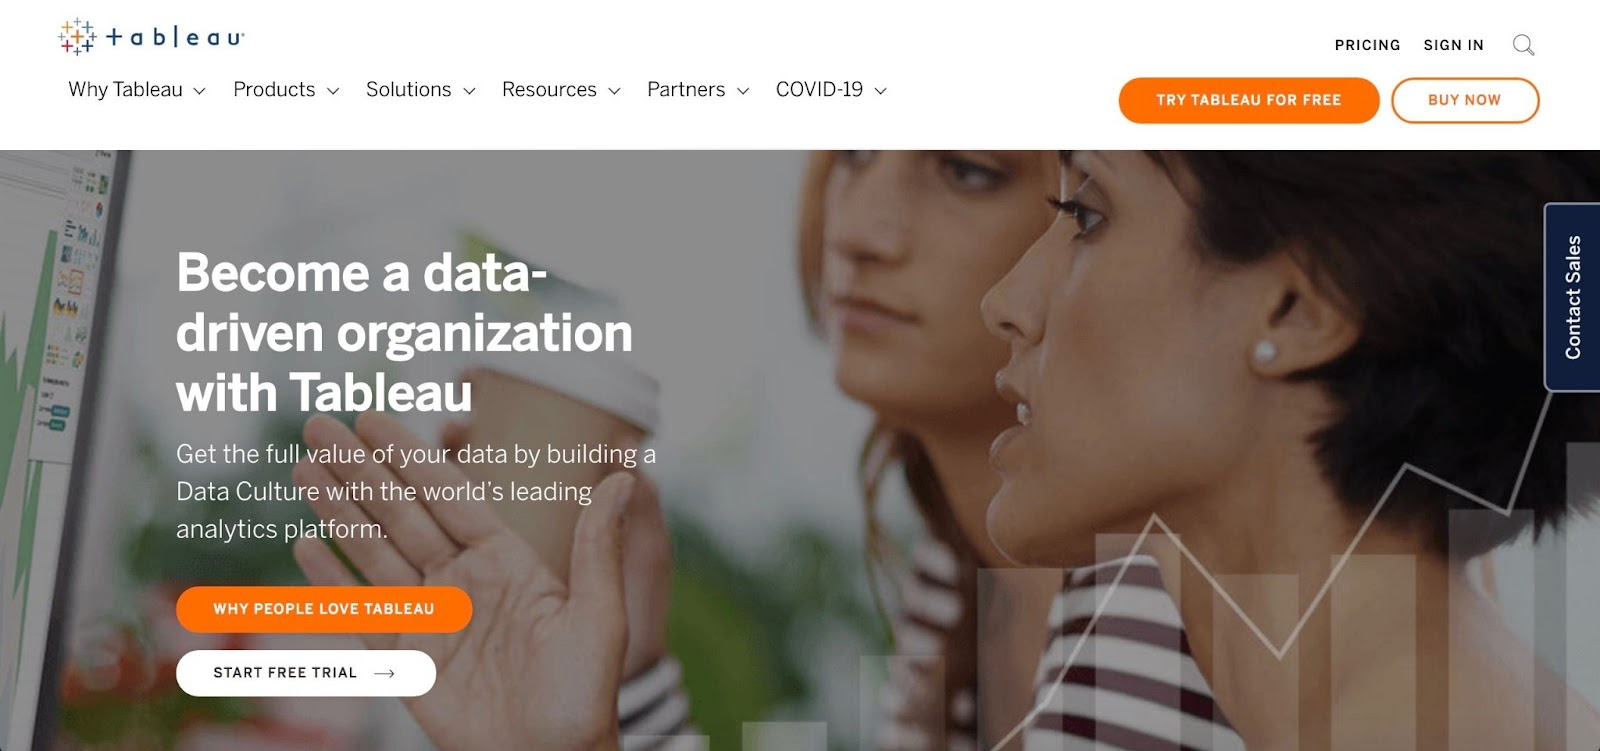 Tableau homepage: Become a data-driven organization.